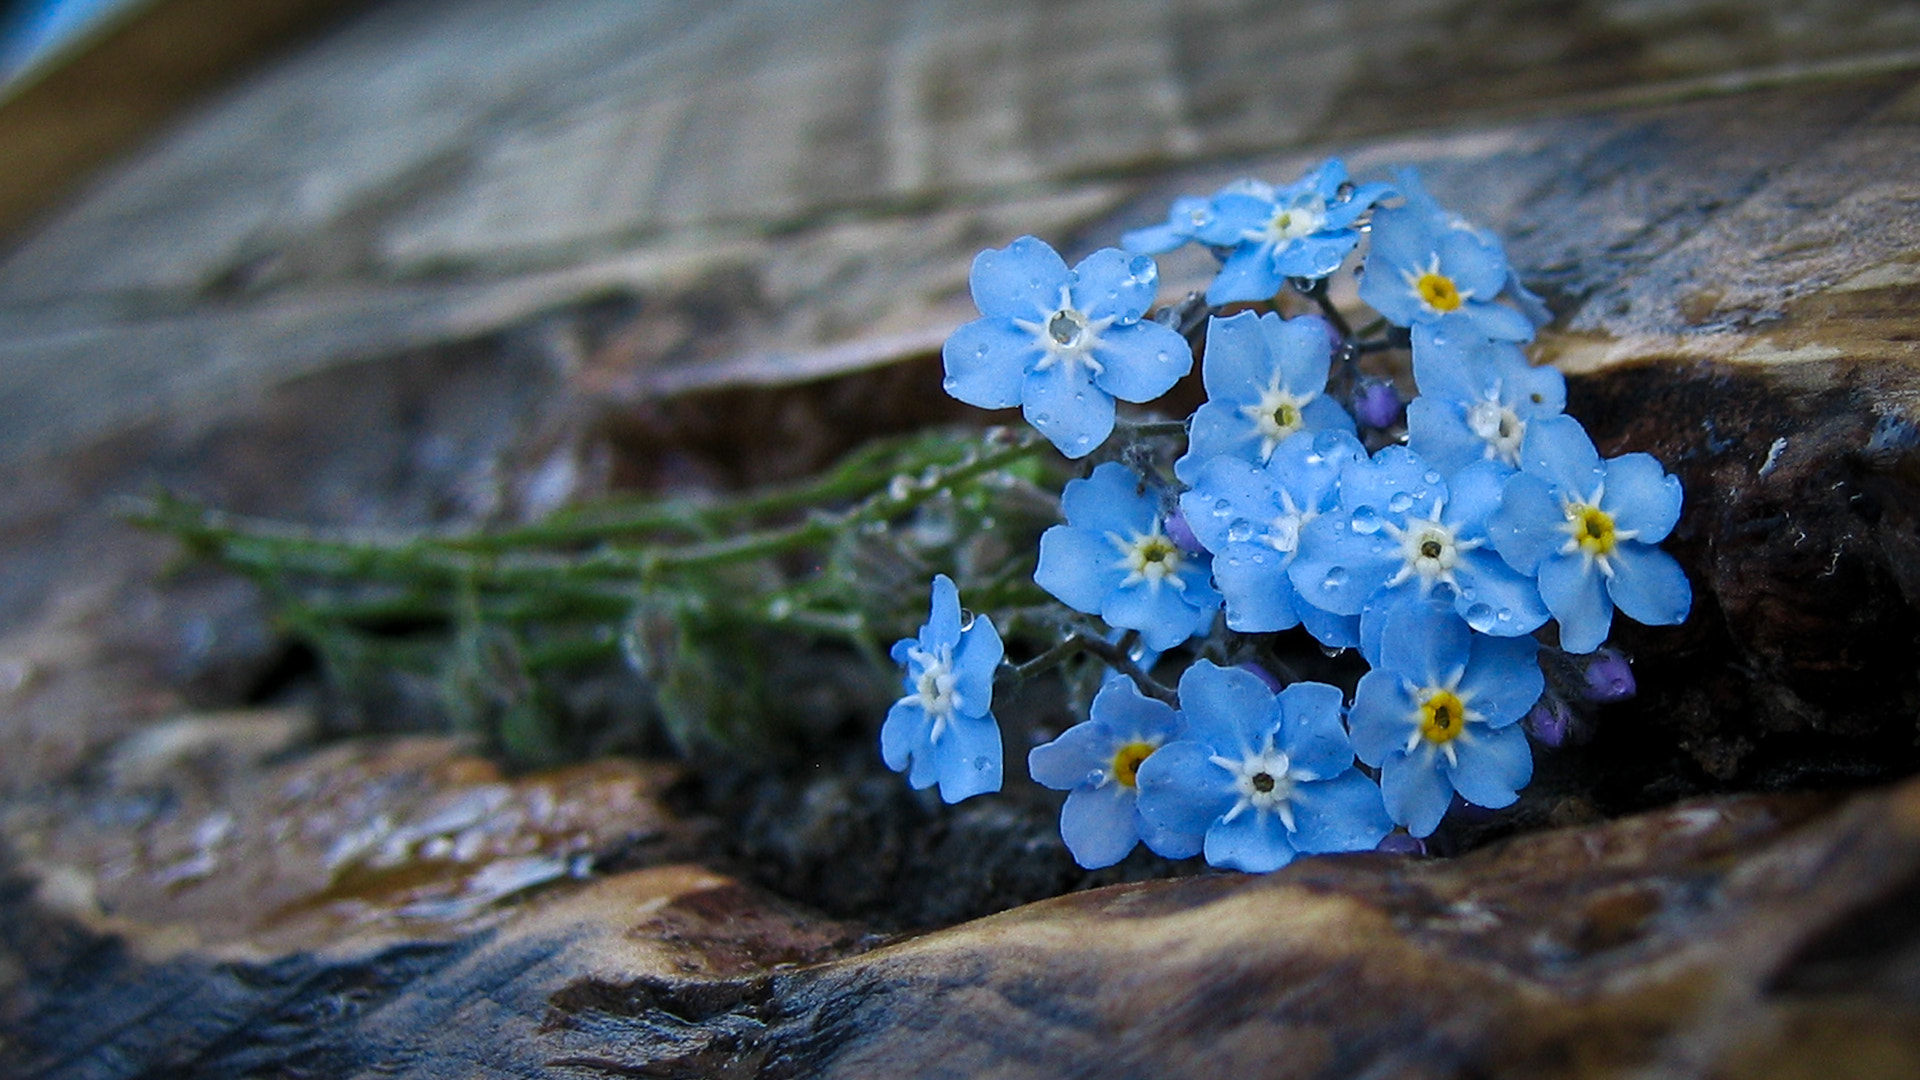 Photograph Flowers by S. Ratnikoff on 500px